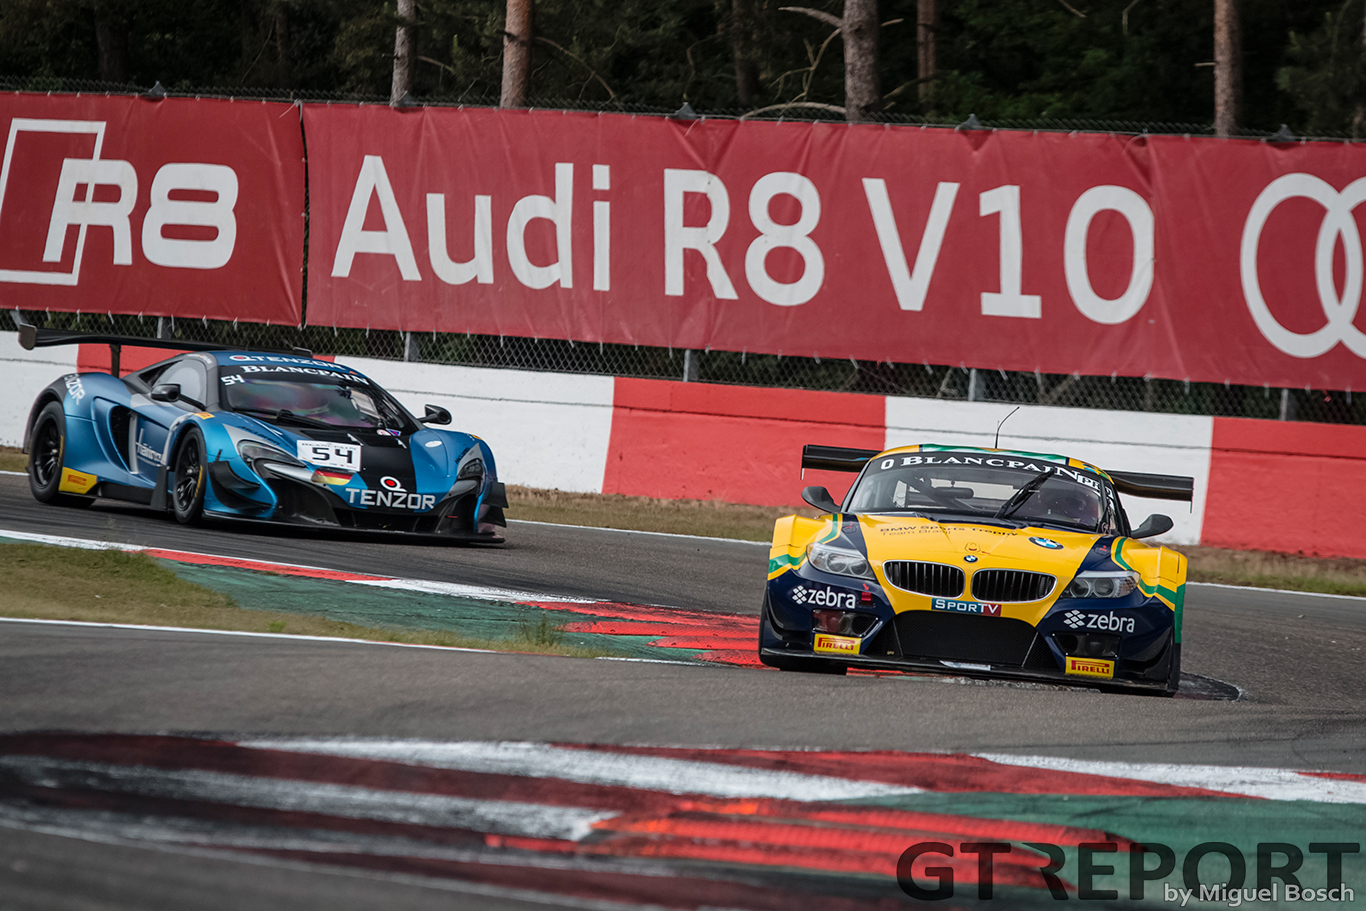 Weekend round-up: Blancpain GT, GT Open, ADAC GT, European GT4